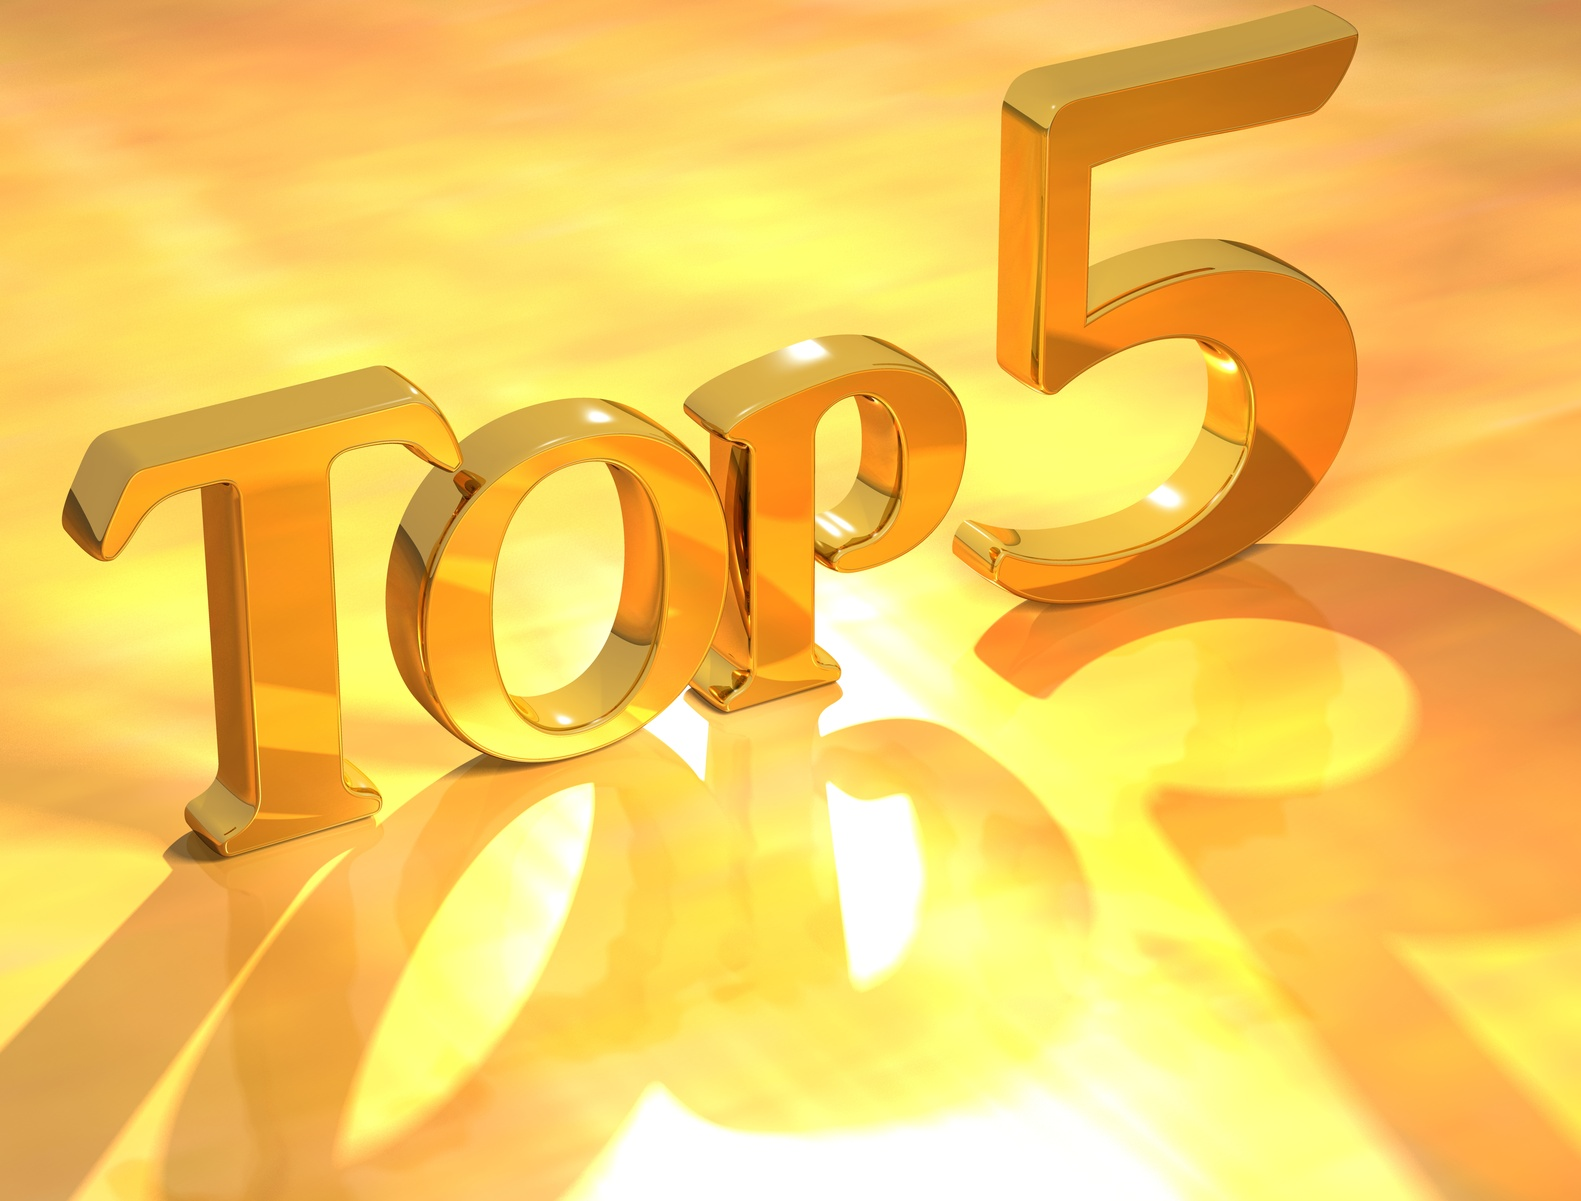 See our top five reasons to put a custom wall plaque in your office!